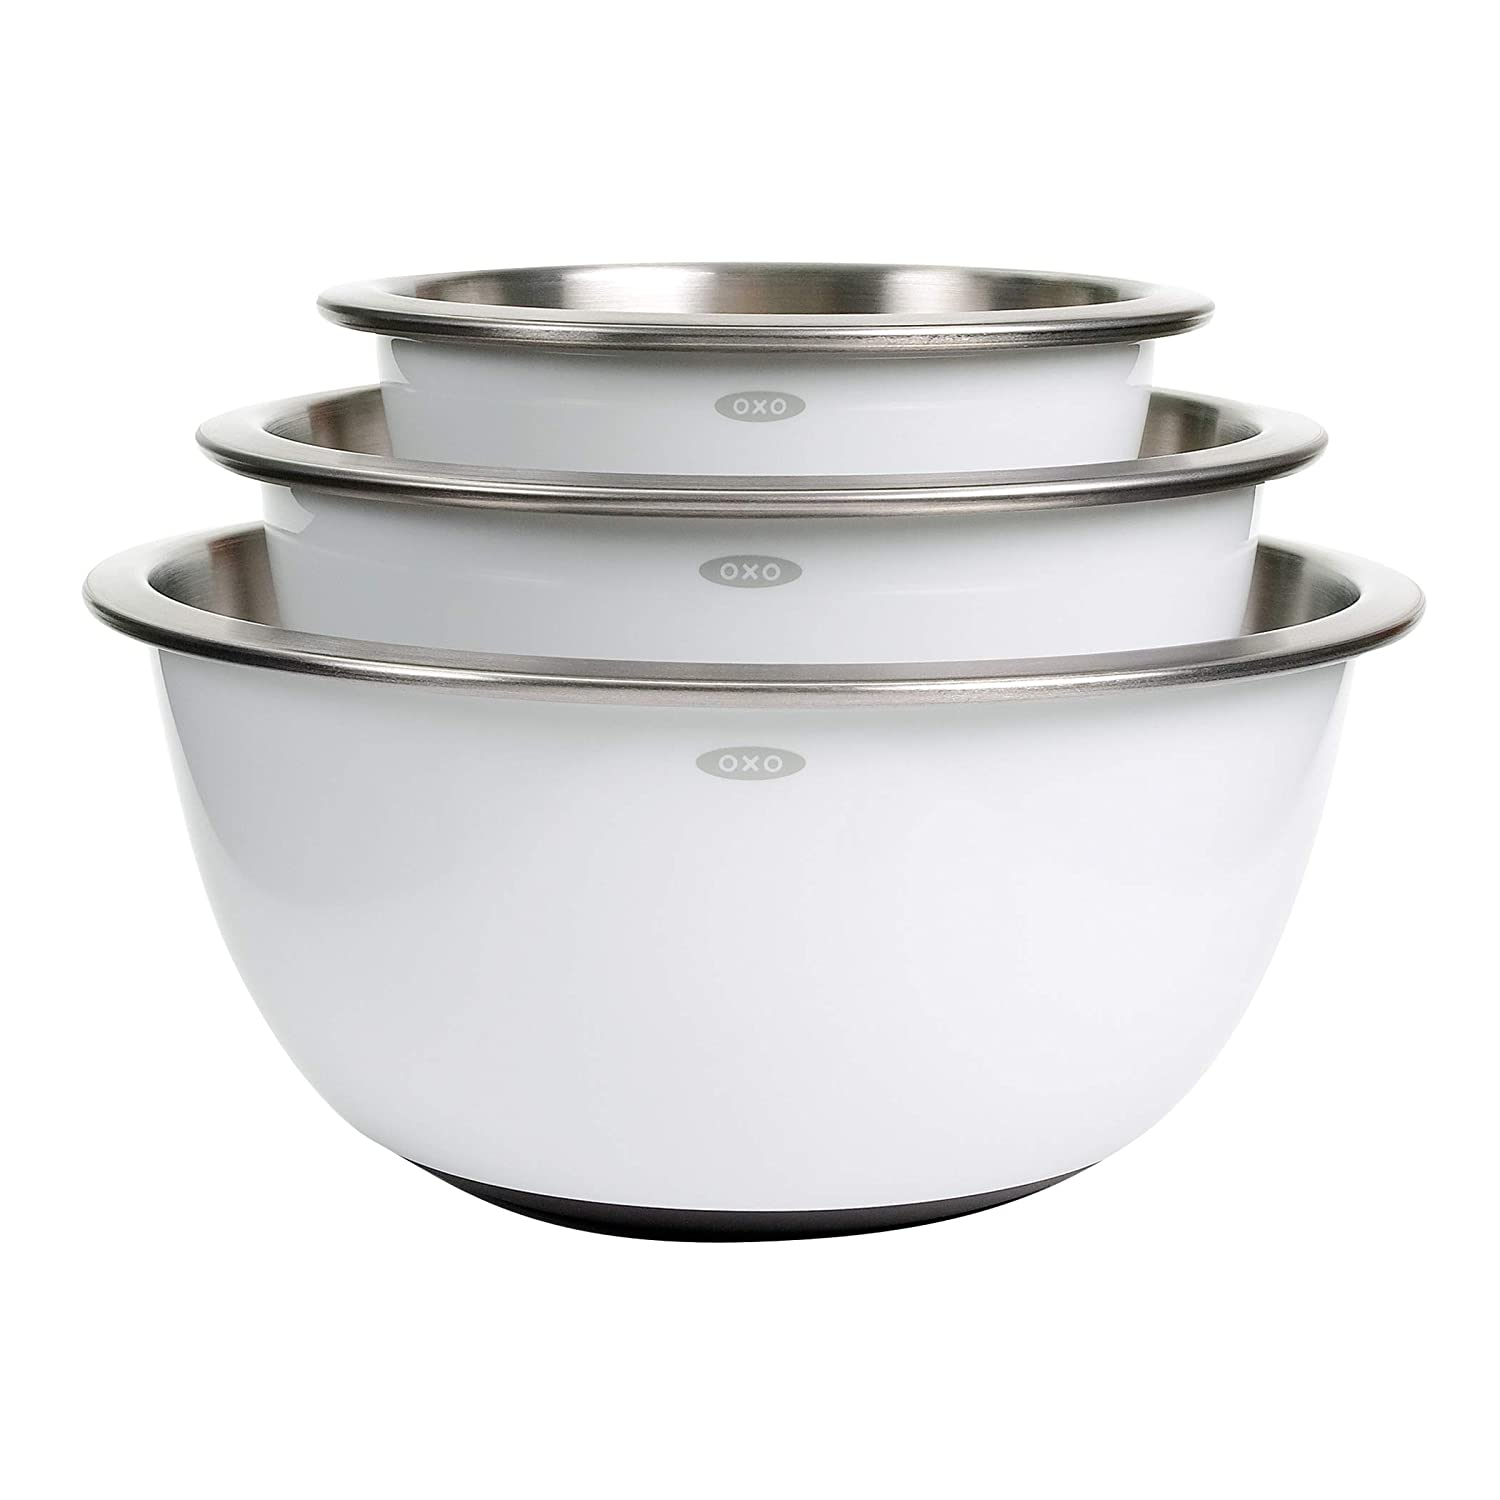 Can i use my stainless steel mixing bowl in the oven